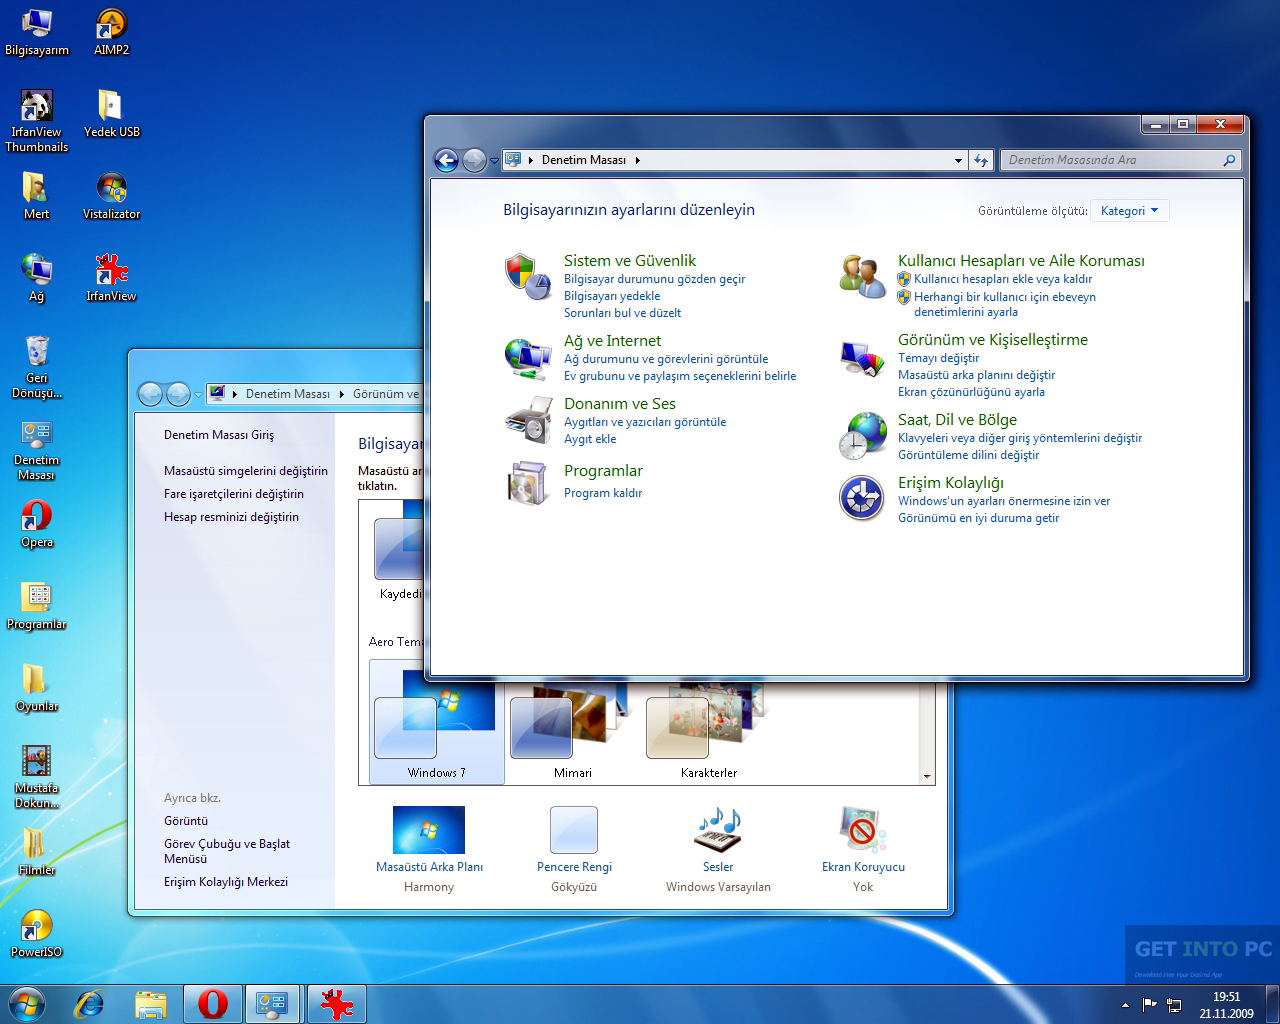 dell windows 7 pro 64 iso